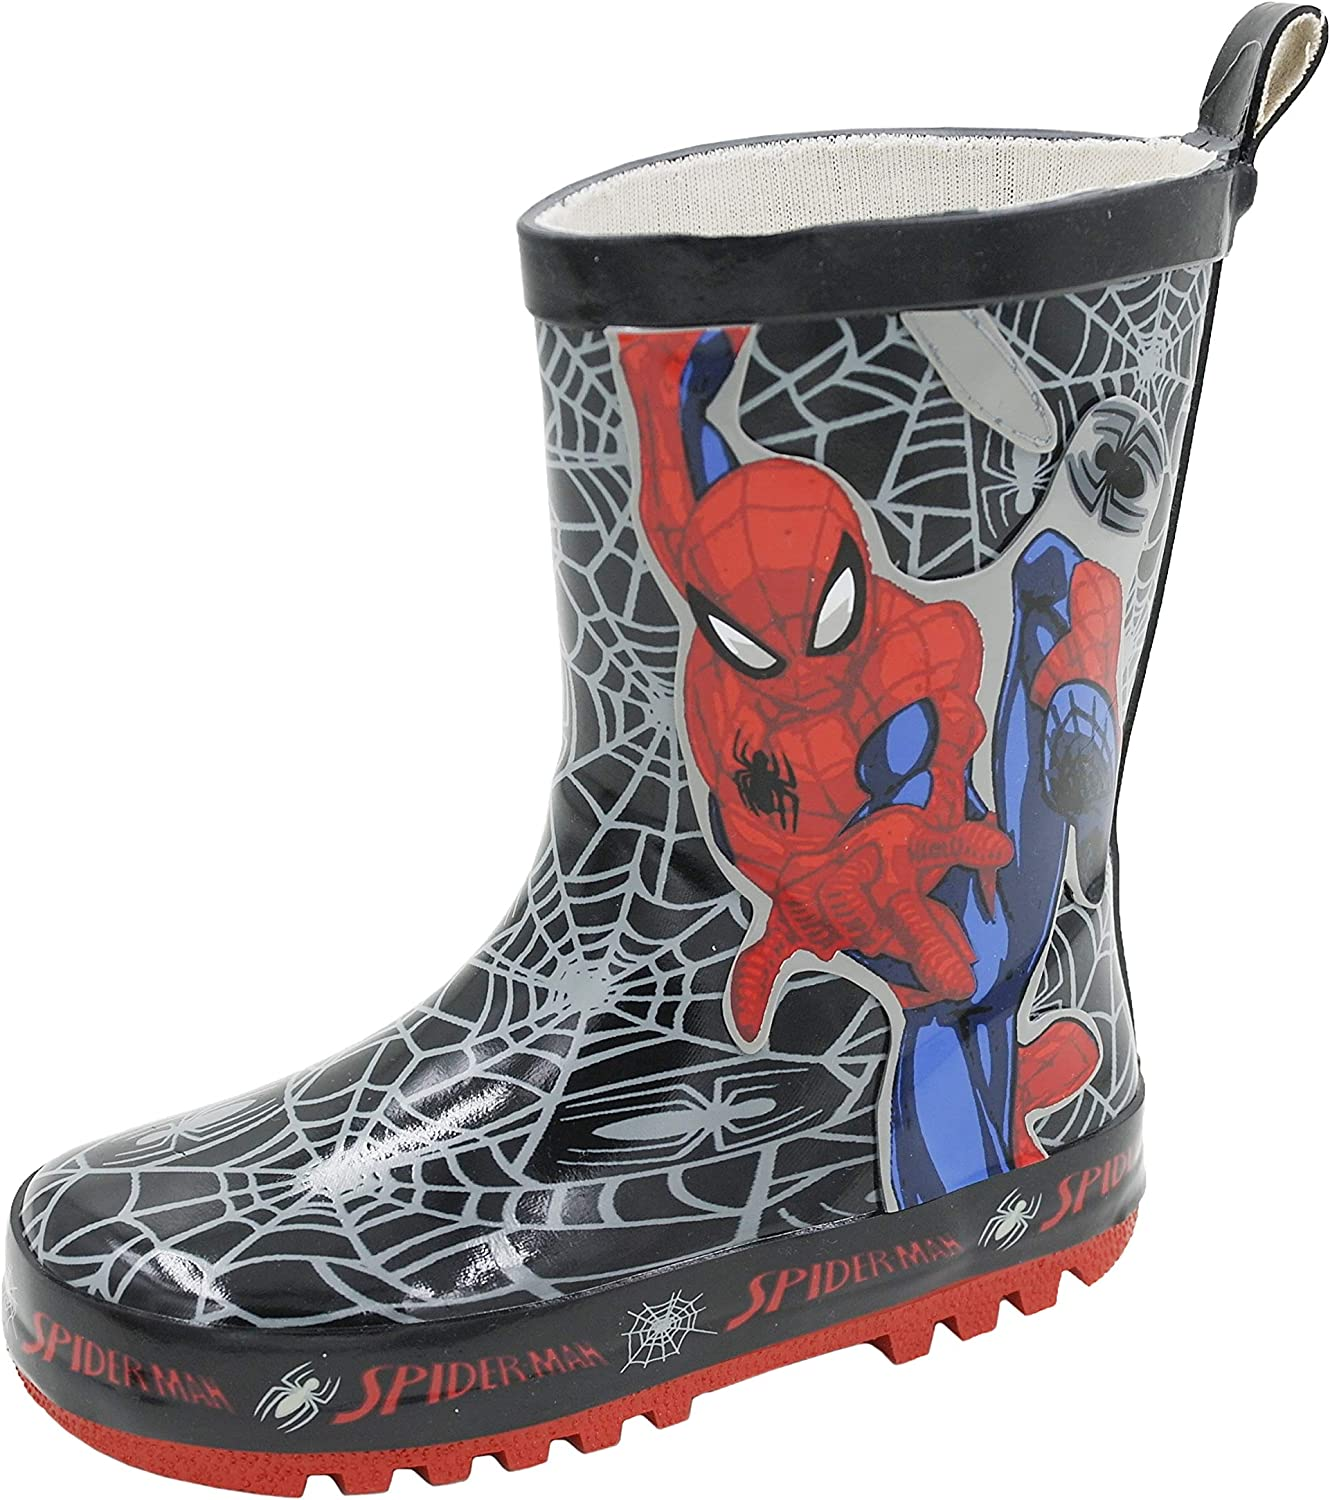 Children/'s Spider-Man Rain Boots Boys Girl/'s Waterproof non-slip Water Shoes